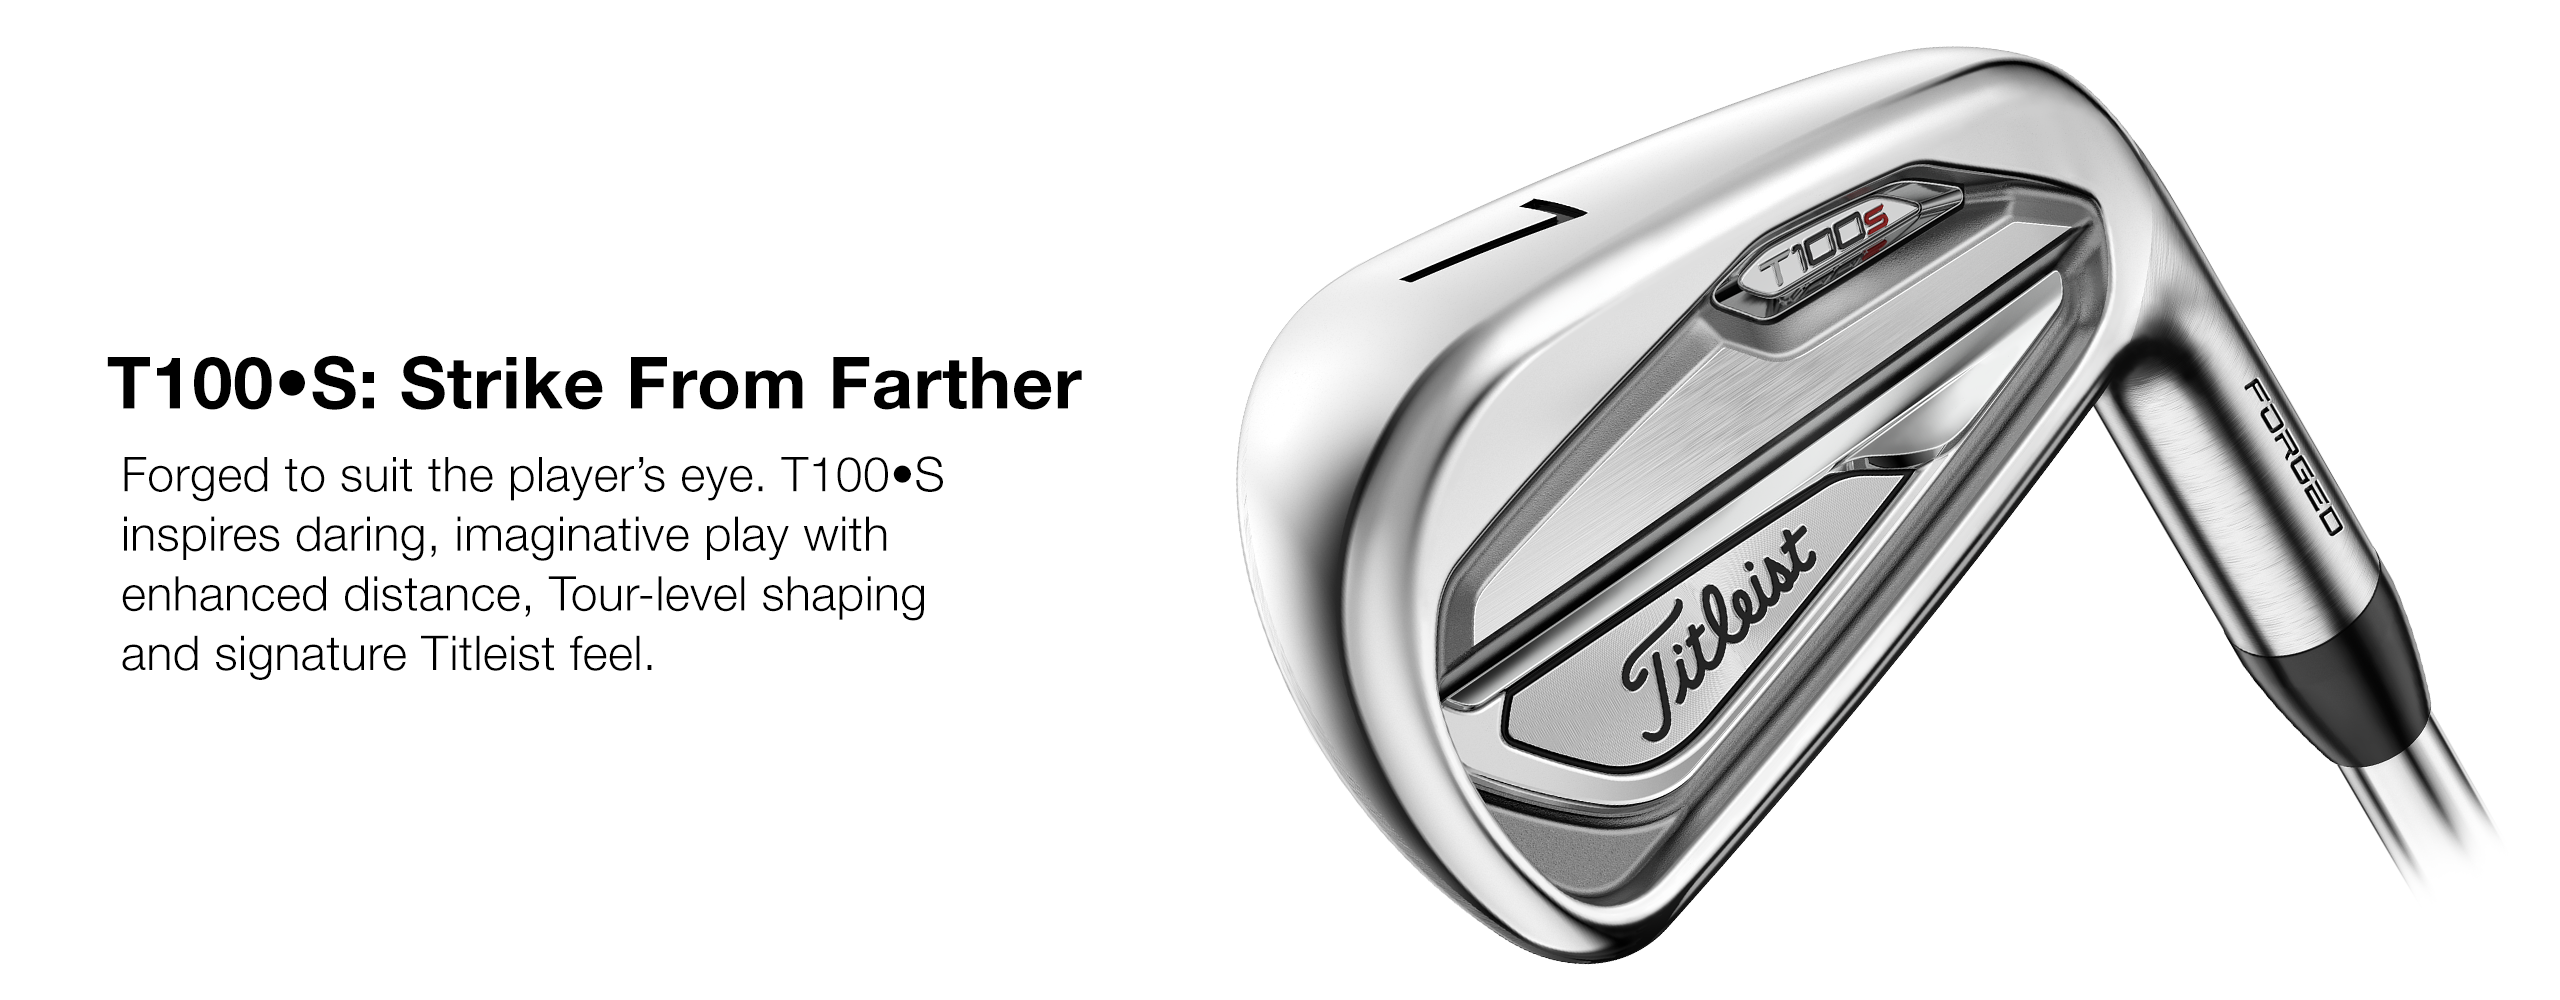 Titleist T100 S Model Overview